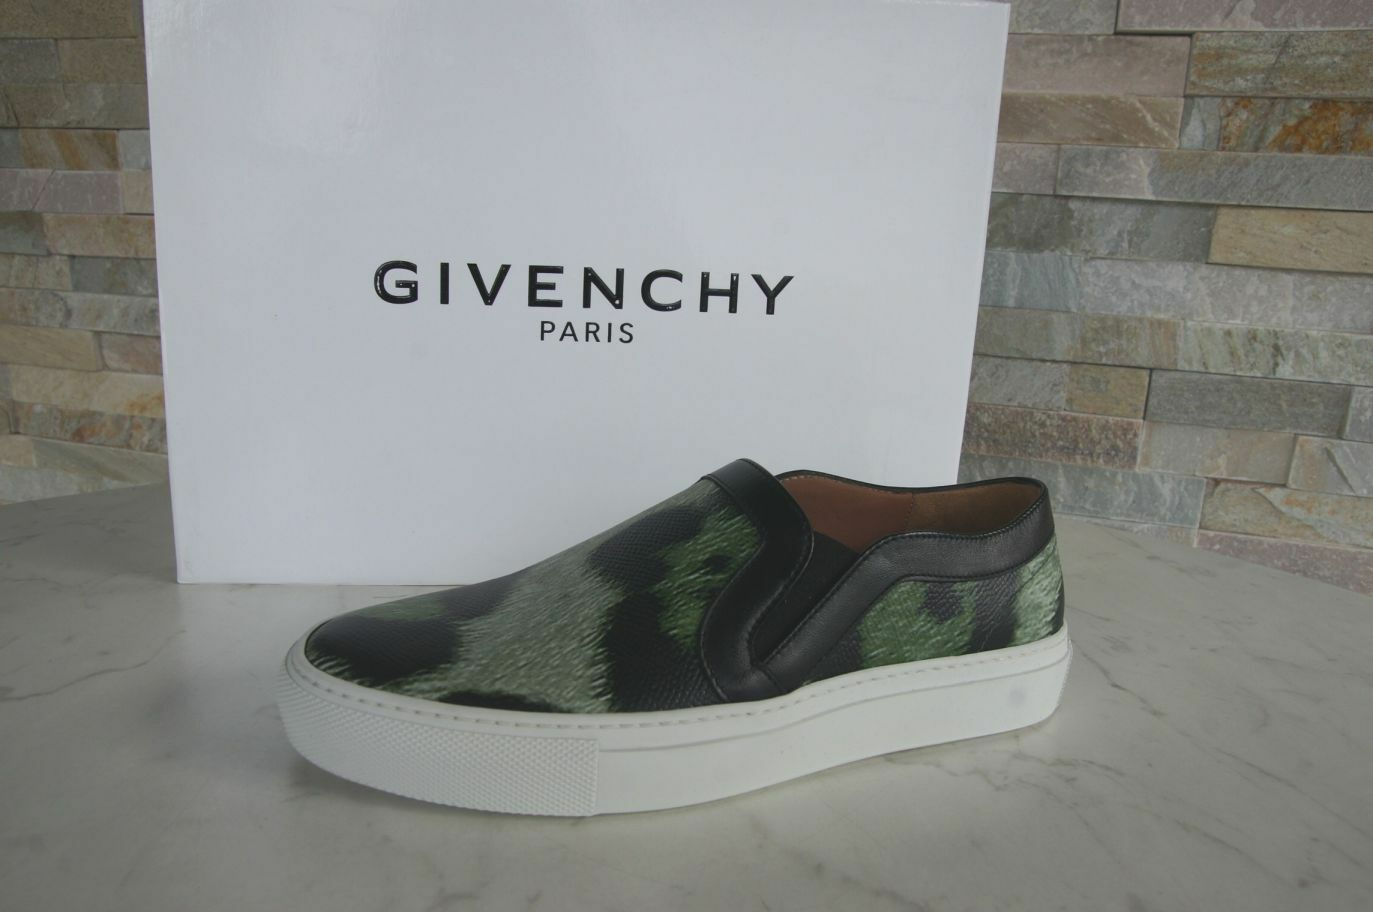 GIVENCHY PARIS Gr 35,5 Slipper Mokassins Slip-On Schuhe multicolor NEU